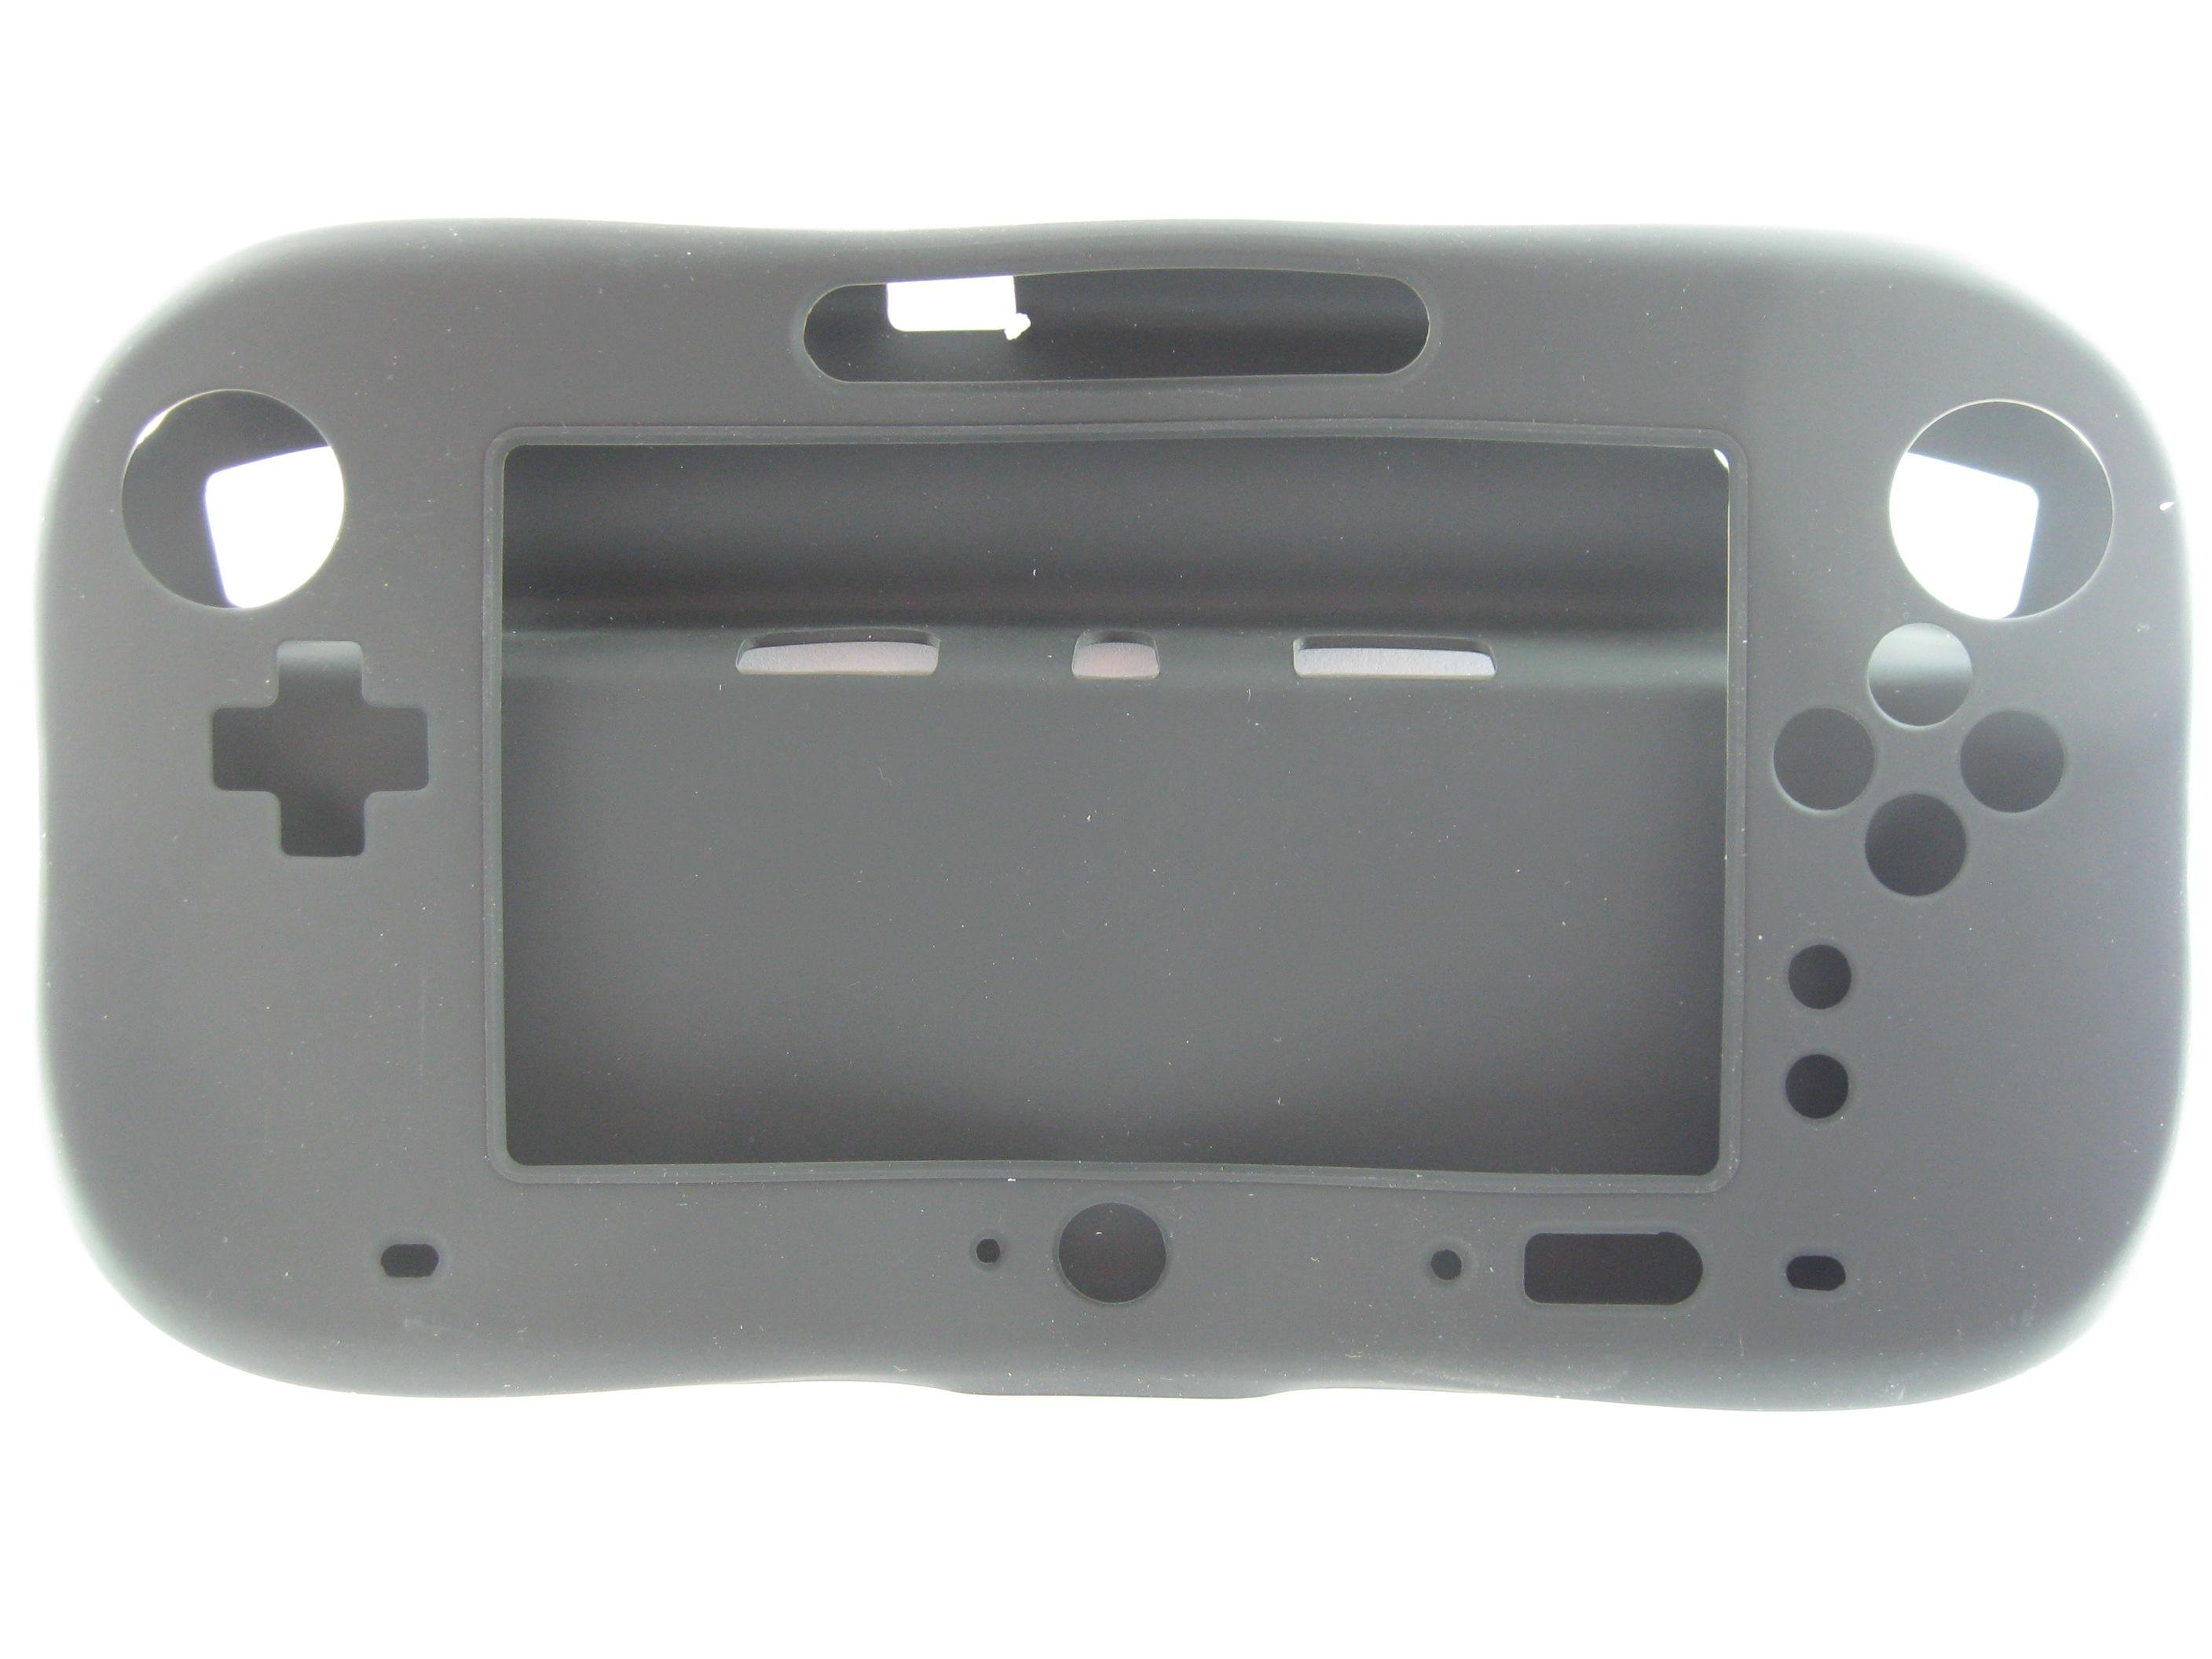 Game pad Nintendo Wii U coque de protection complete souple noir